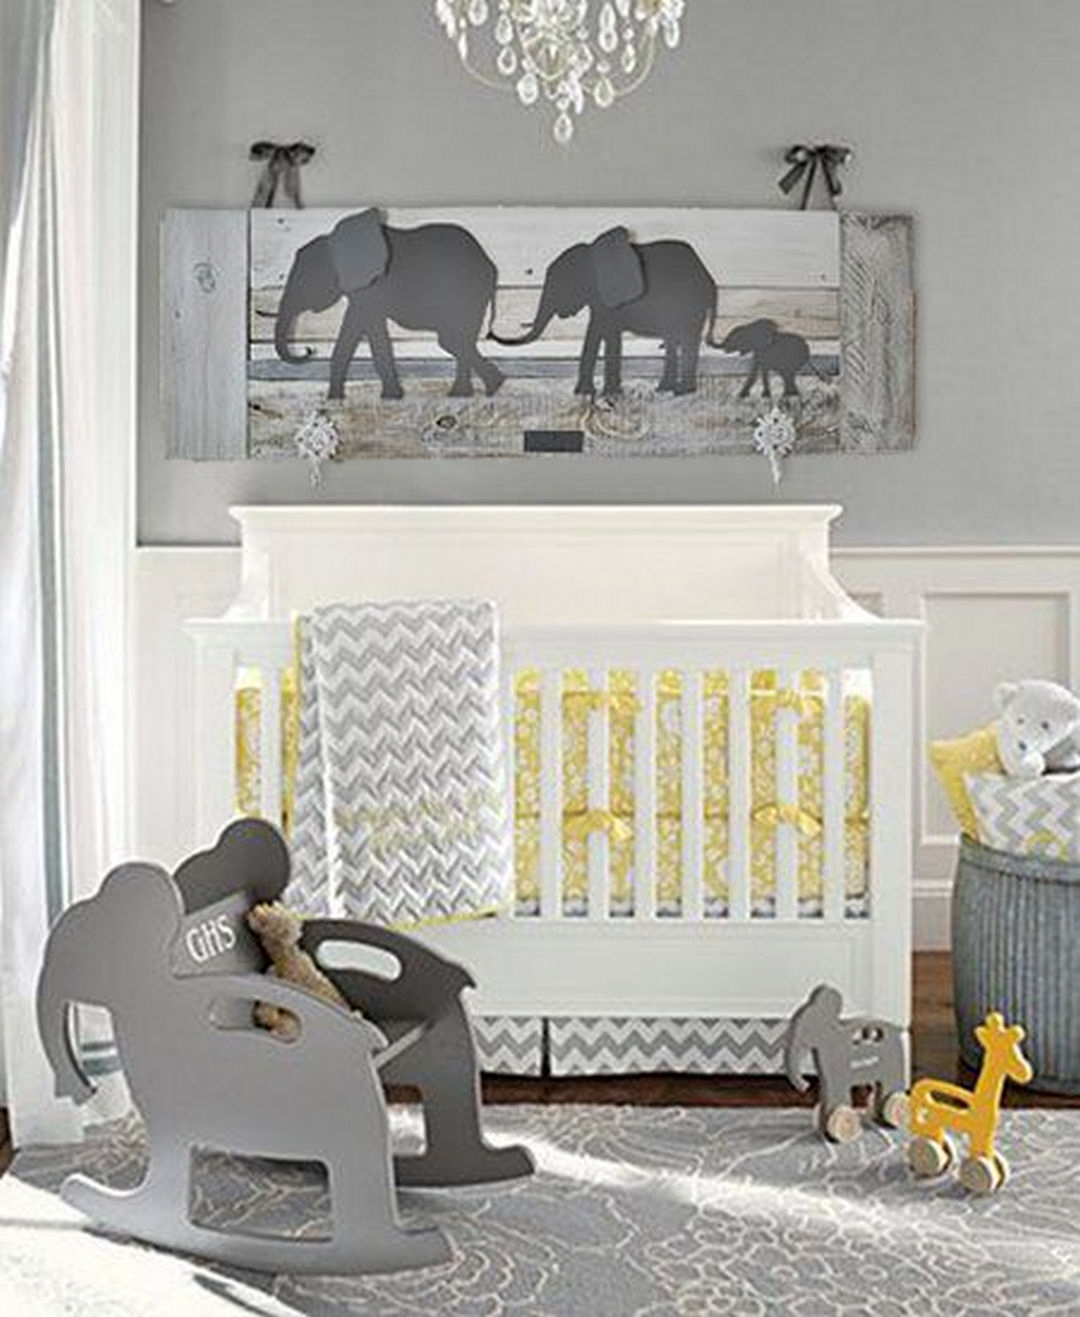 Best Baby Nursery Room Decor Ideas 62 Adorable Photos Https Www